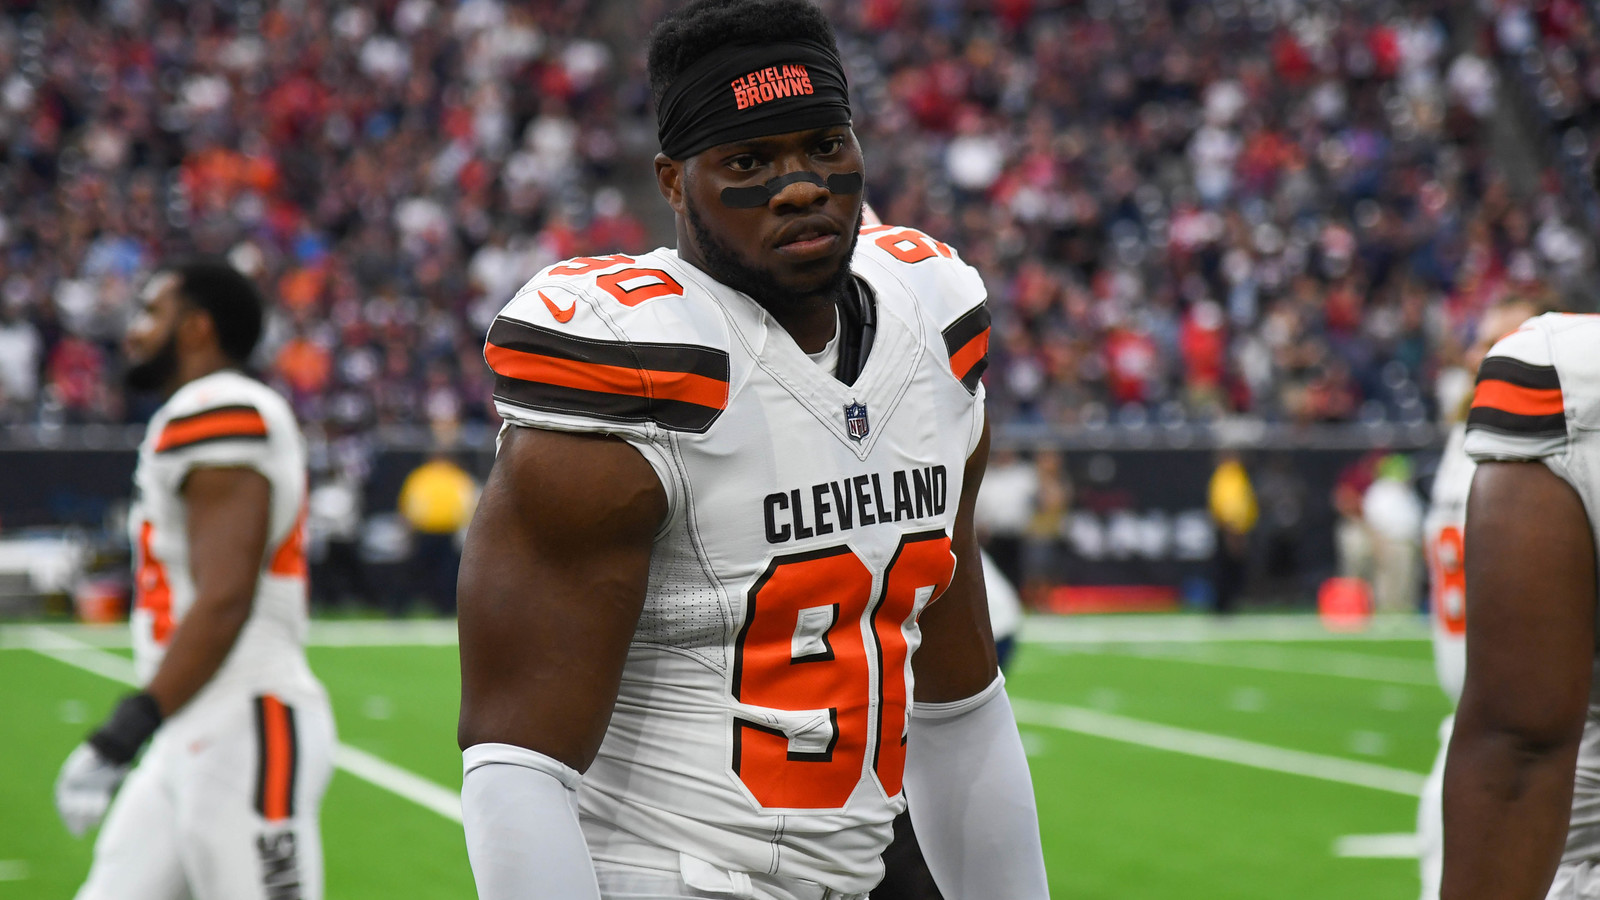 Browns' Emmanuel Ogbah Not Amused By 0-16 Parade